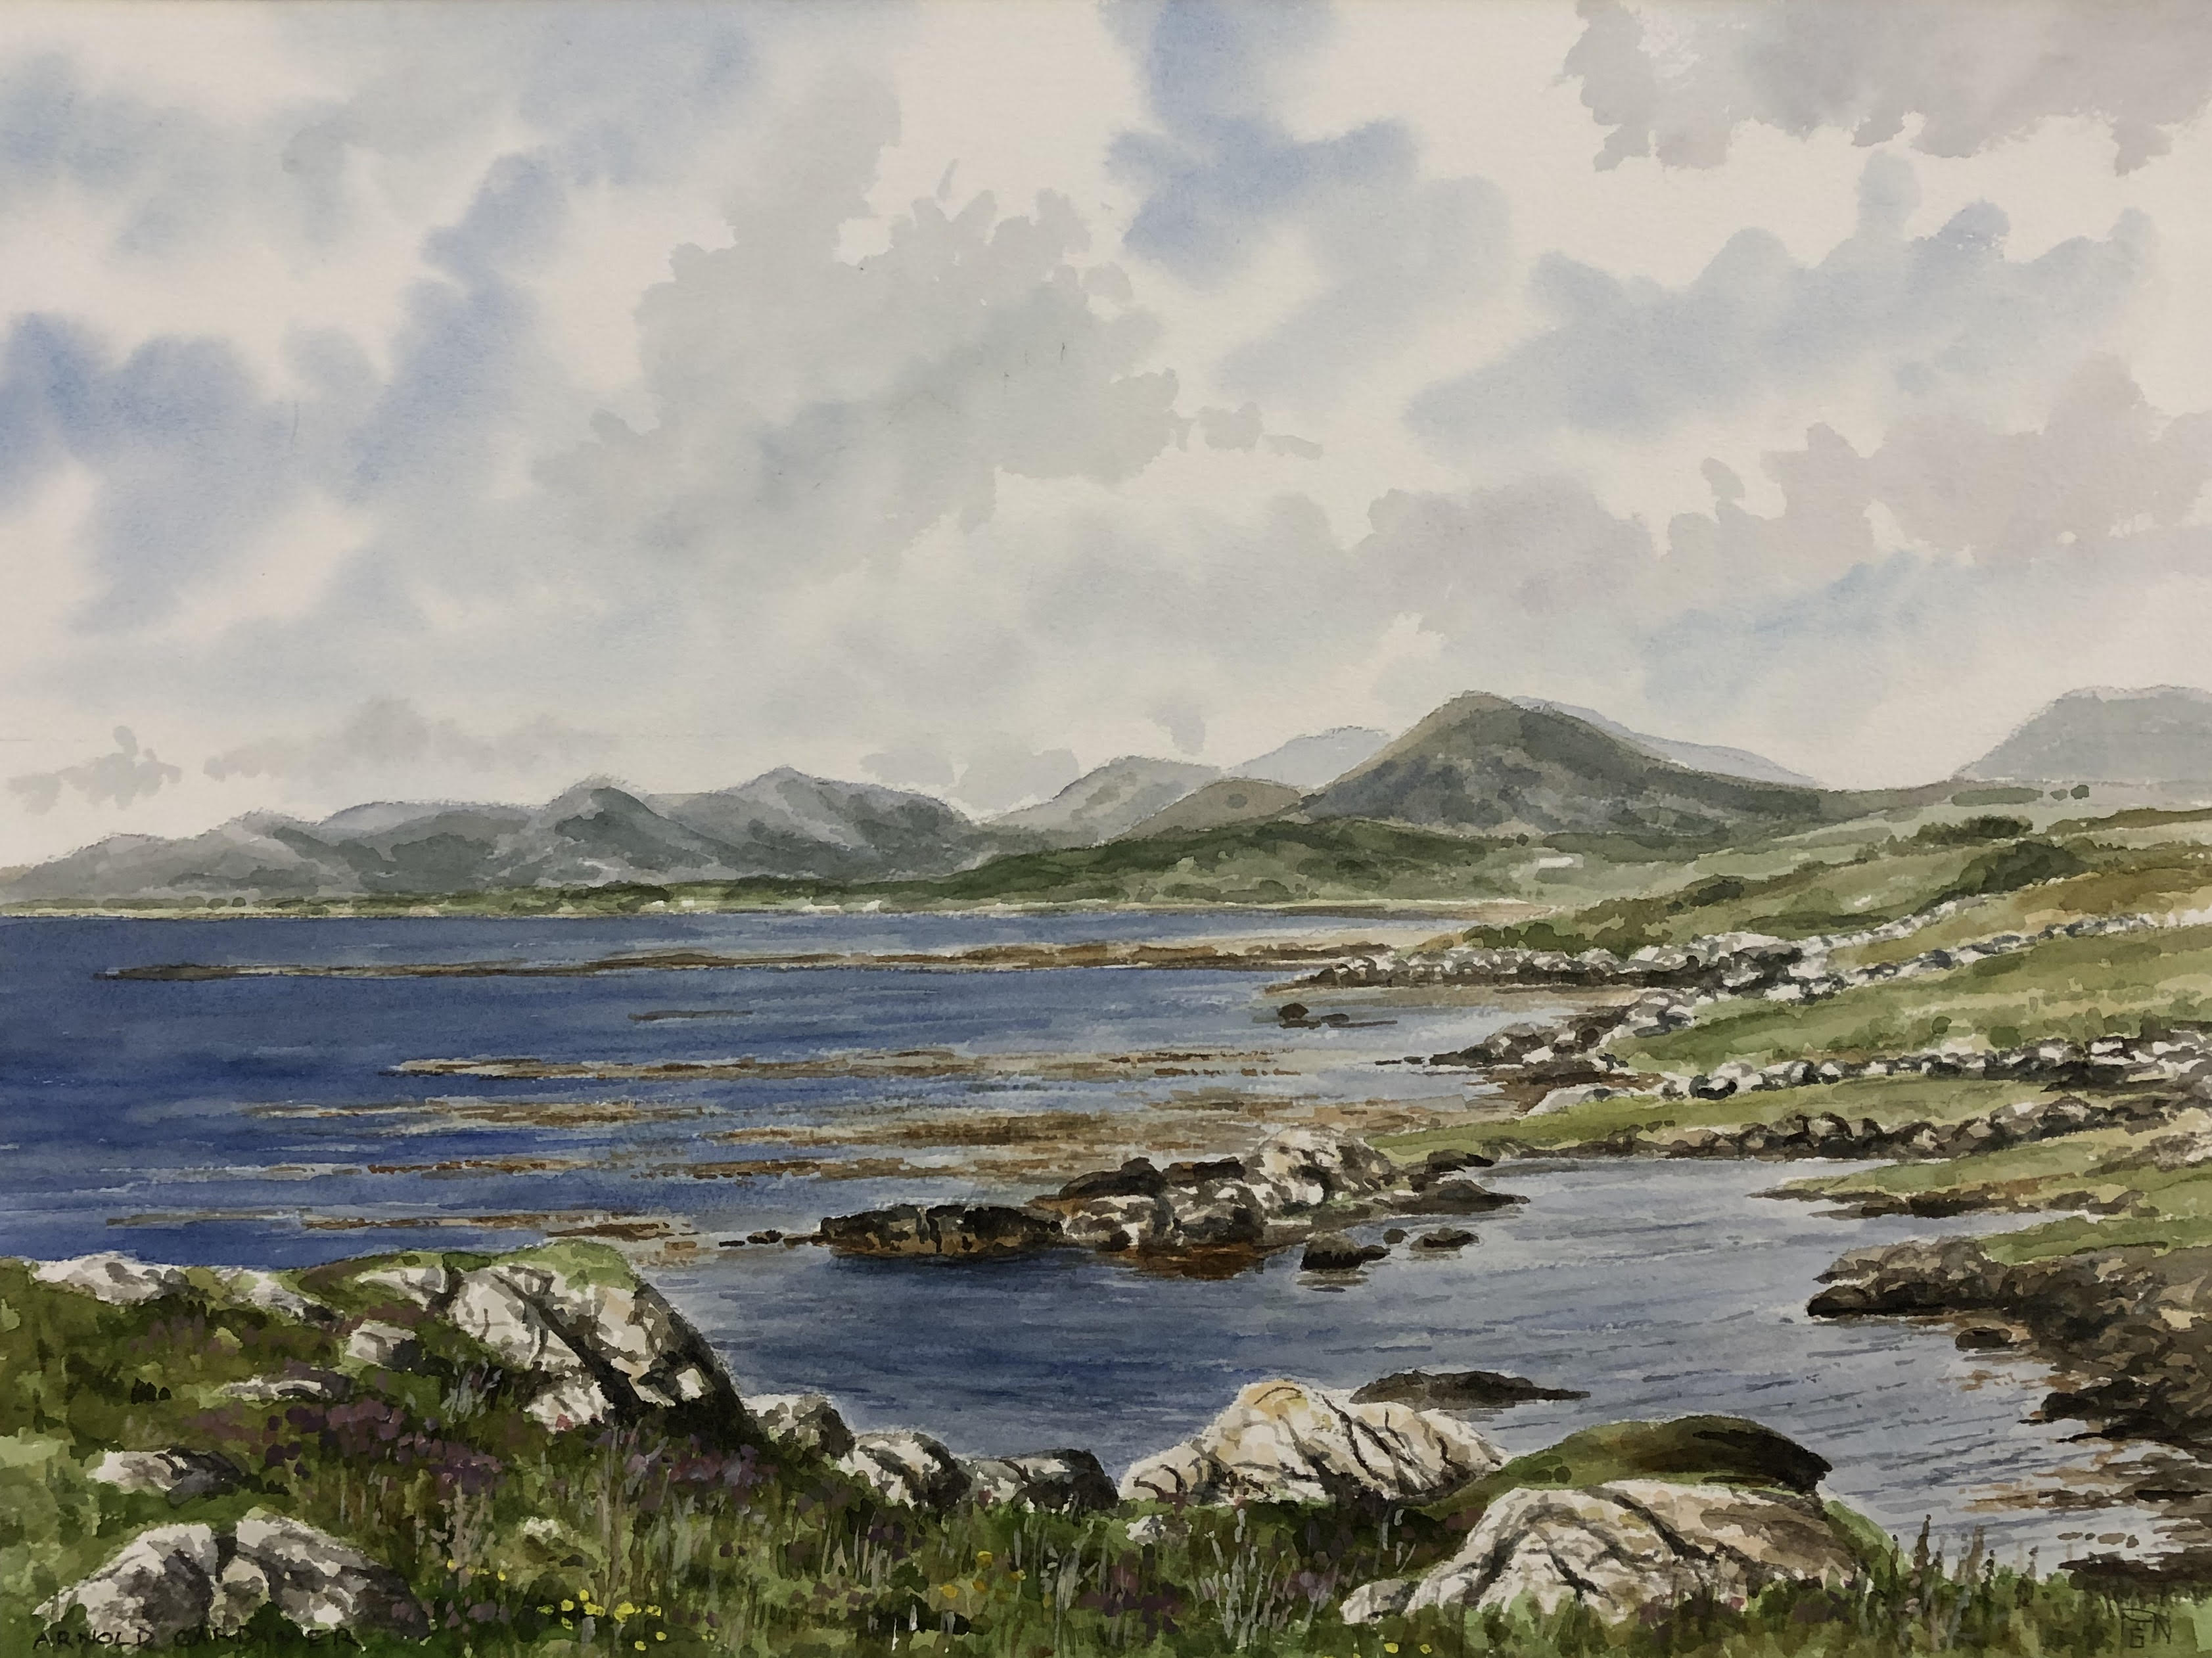 Bertraghboy Bay by Arnold Gardiner